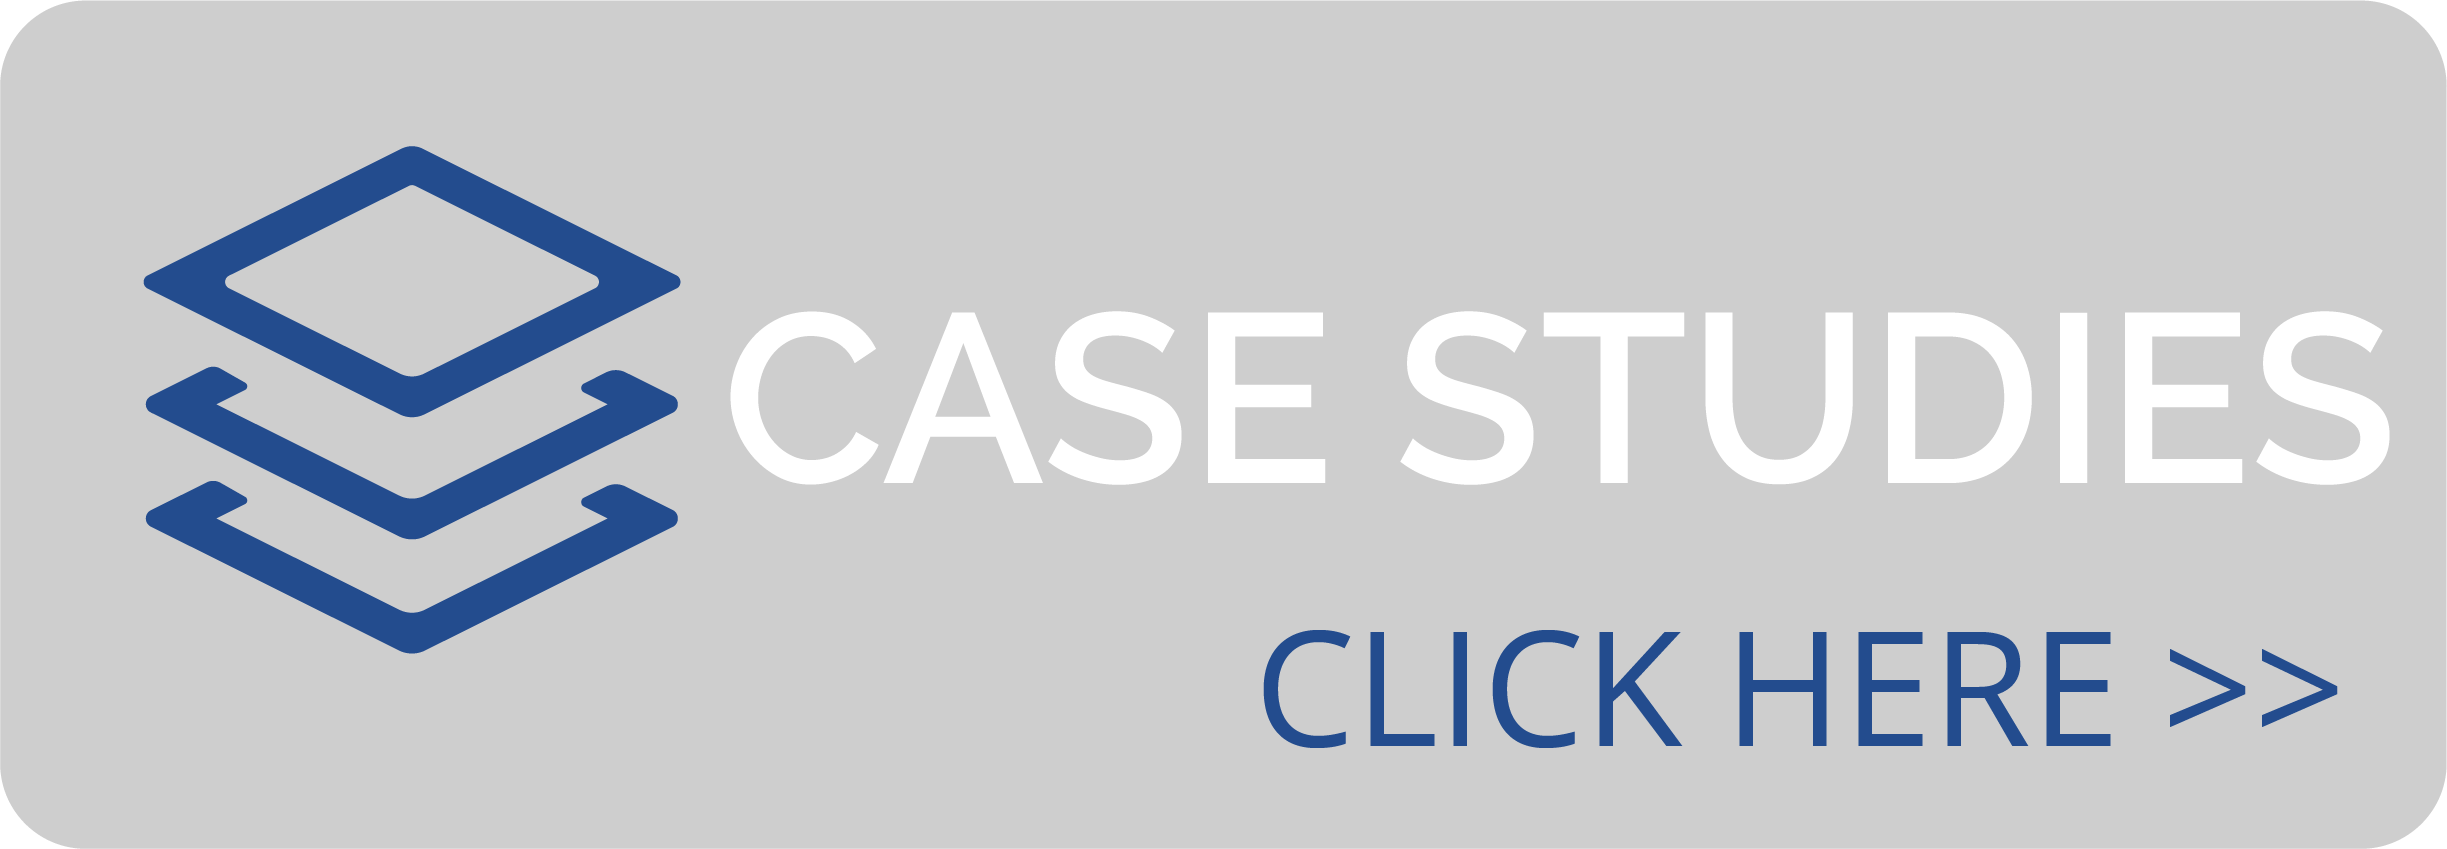 Click here to view our Case Studies.